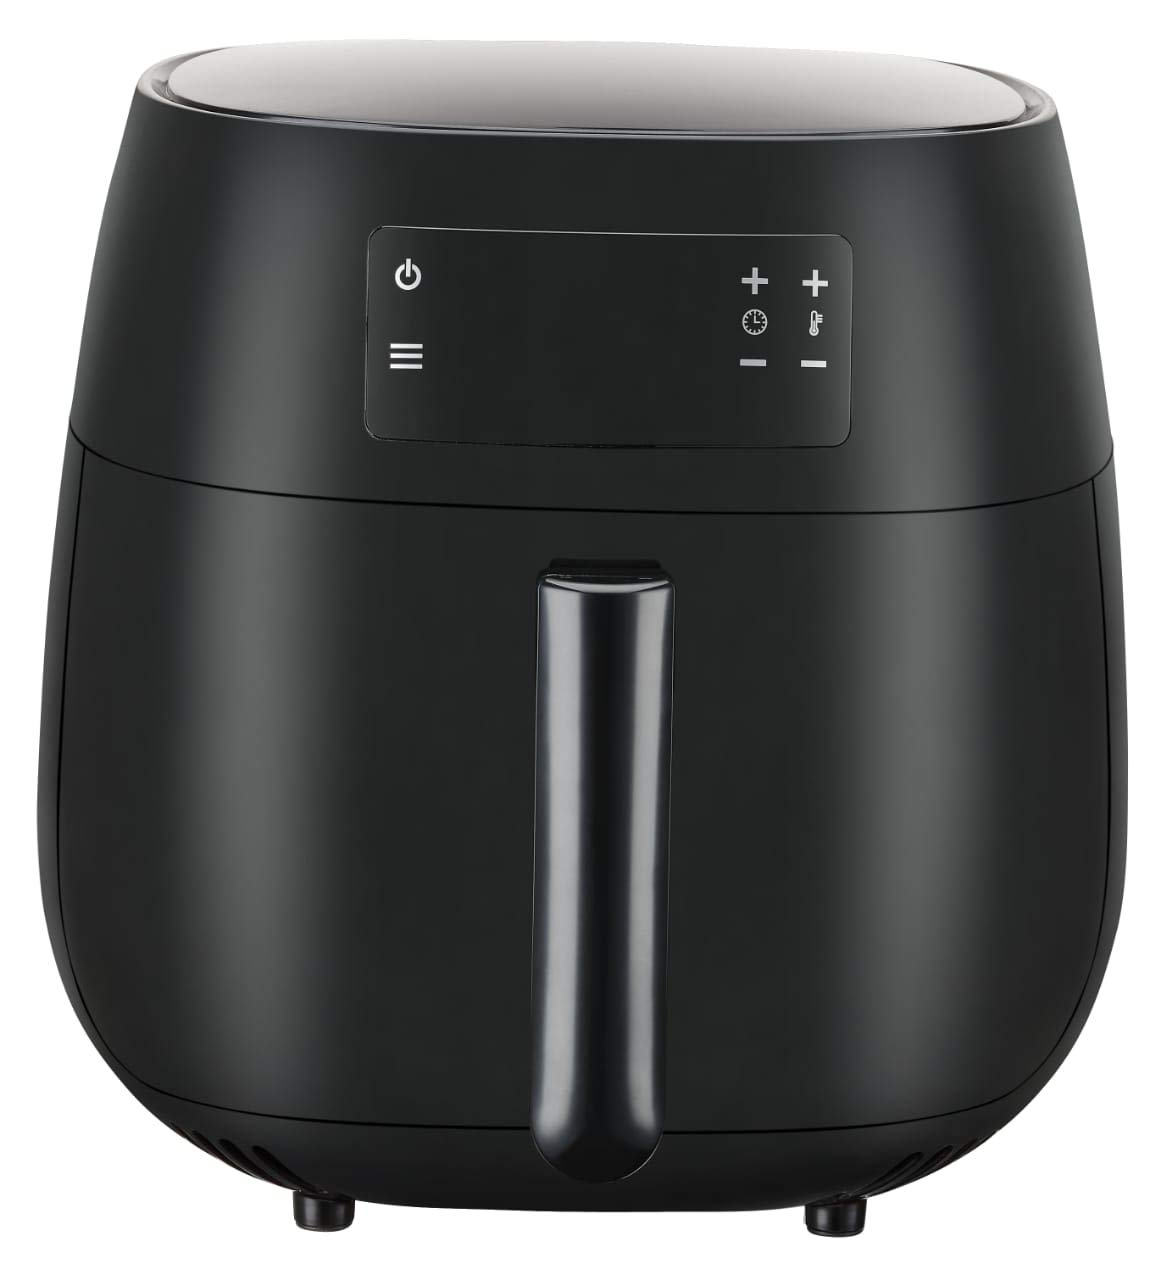 Emerald Air Fryer 4.0 Liter Capacity with Double Ceramic Basket & Pan Set, Digital LED Touch Display, Rapid Air Technology 1400 Watts (1819)